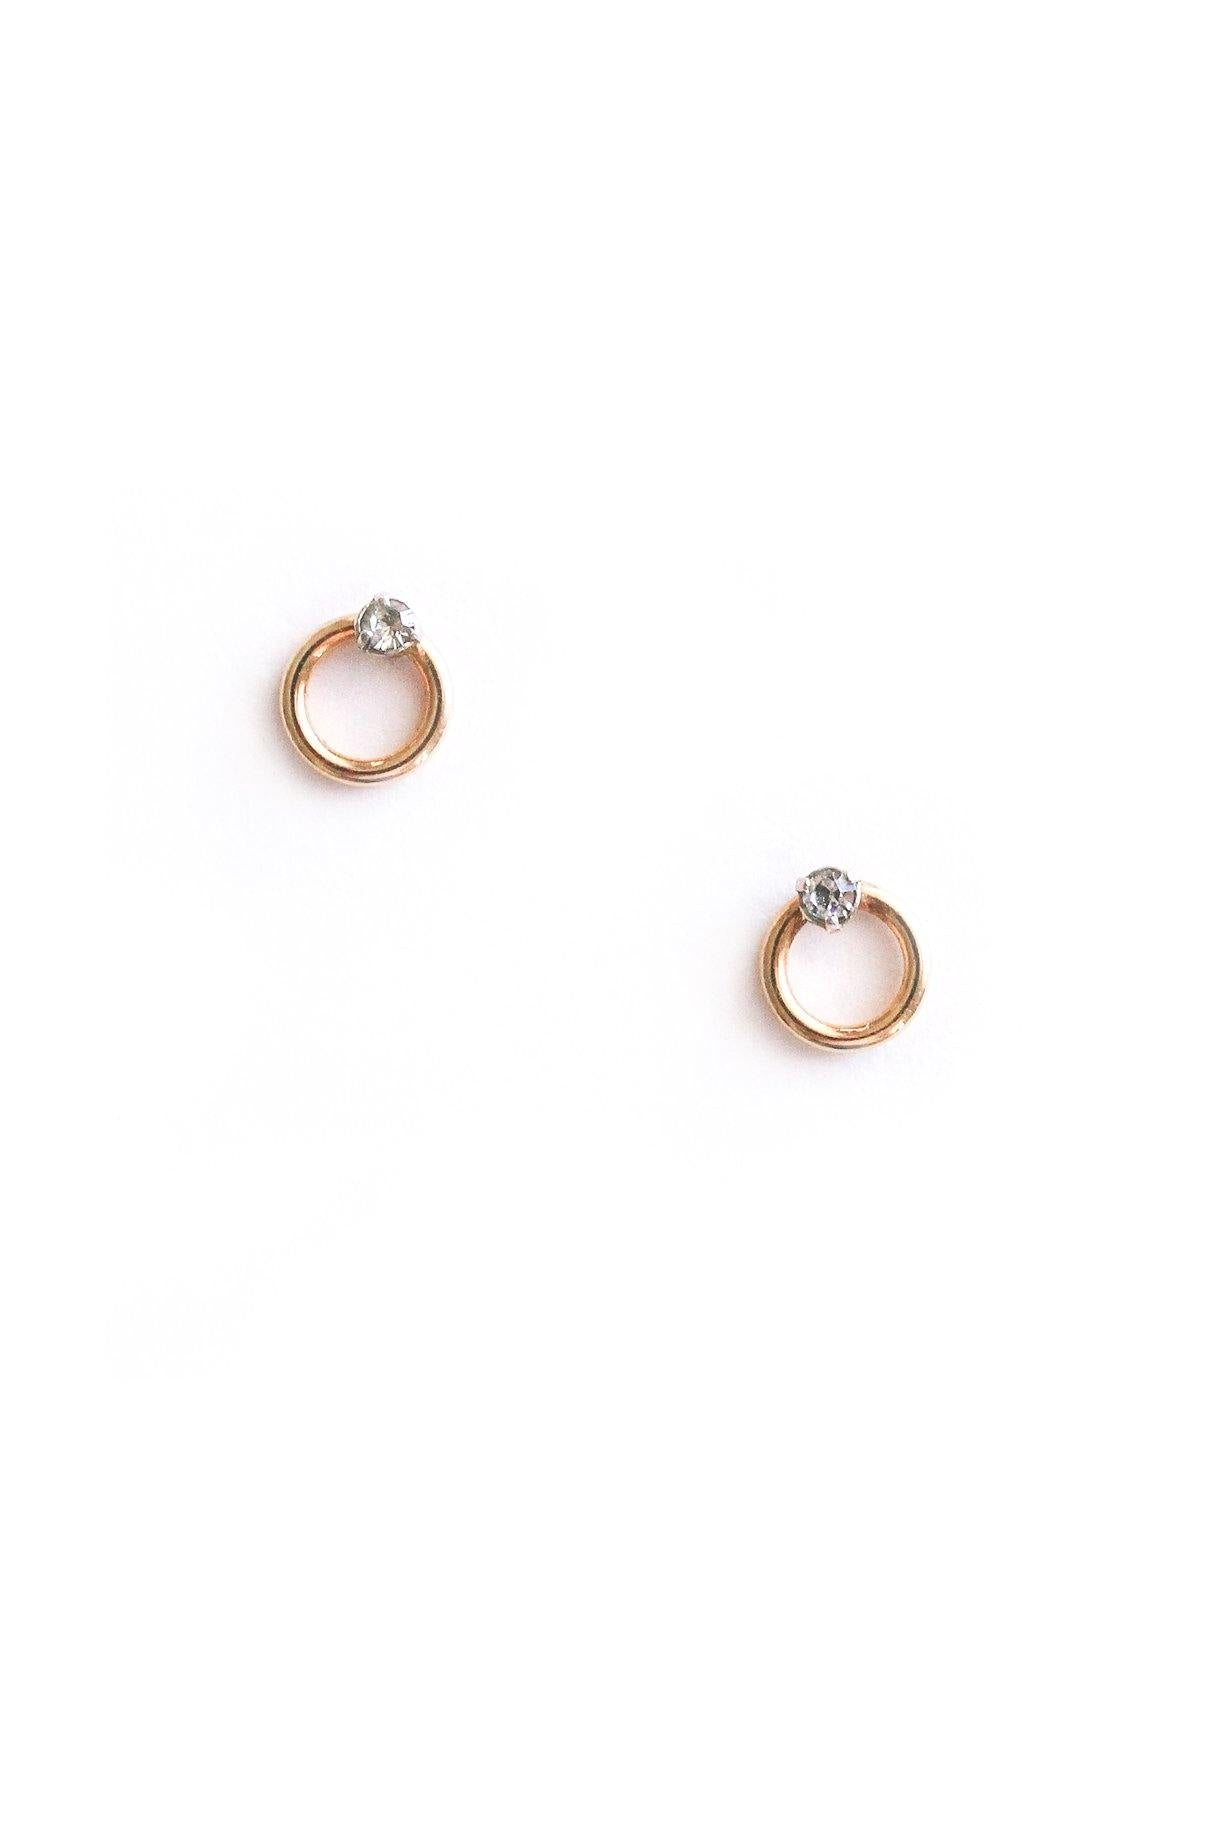 Dainty gold filled vintage earrings from Sweet & Spark.